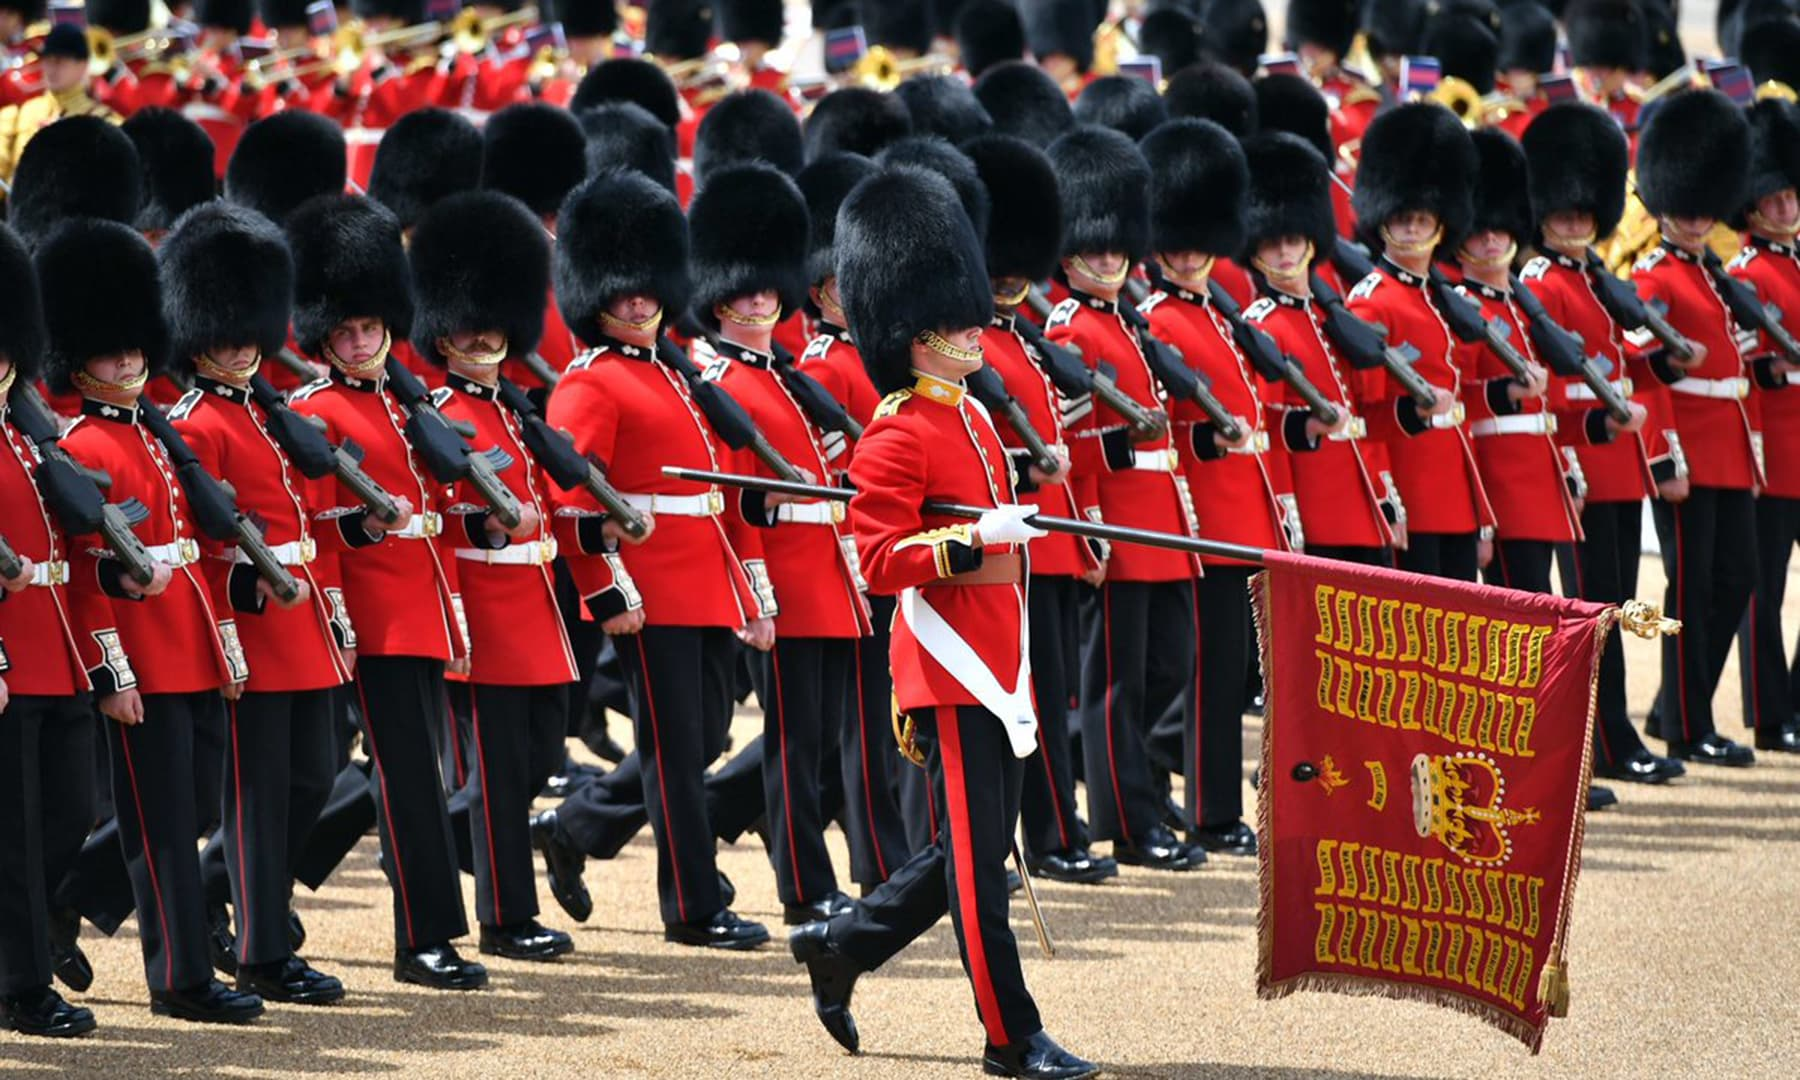 The Colour of the 1st Battalion Grenadier Guards is being trooped at the Queen's Birthday Parade. — Photo courtesy @RoyalFamily